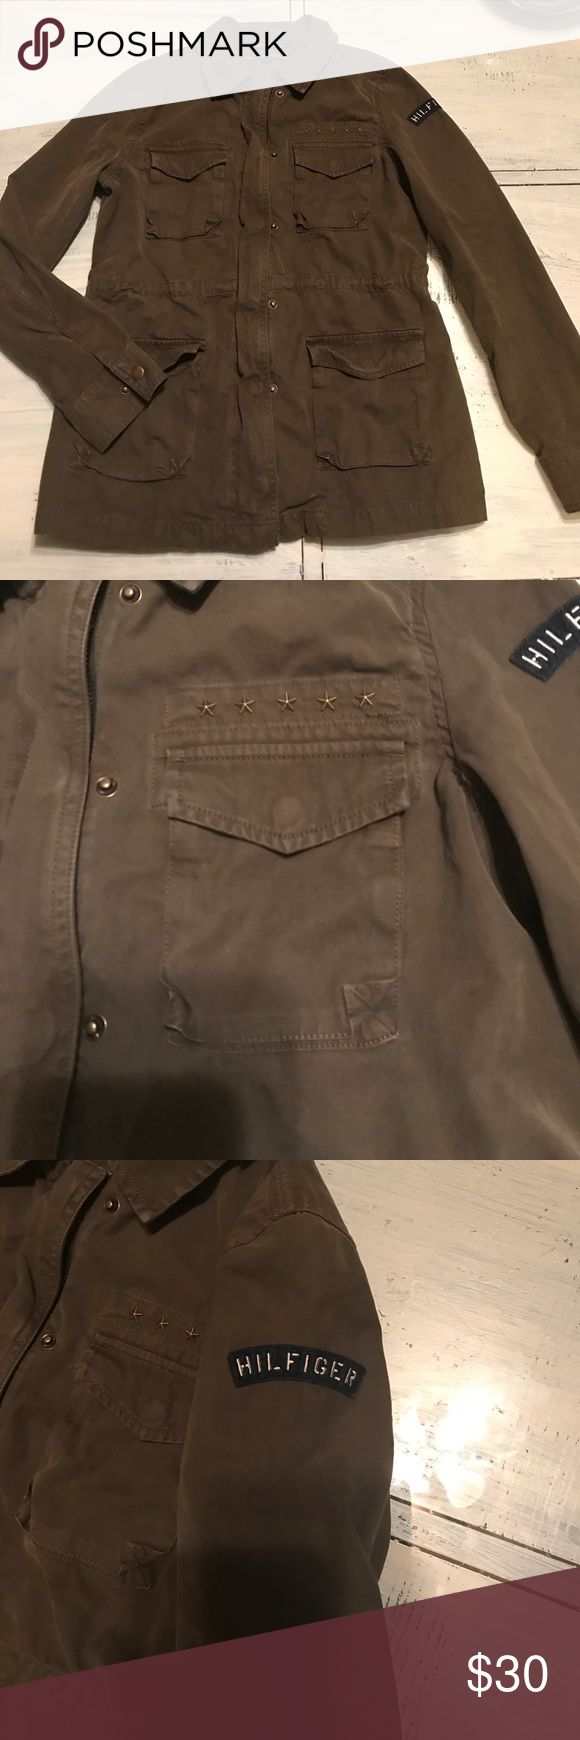 Tommy Hilfiger army jacket Tommy Hilfiger army jacket with bronze hardware and patches on the arm . Great jacket for fall ! In excellent condition Tommy Hilfiger Jackets & Coats